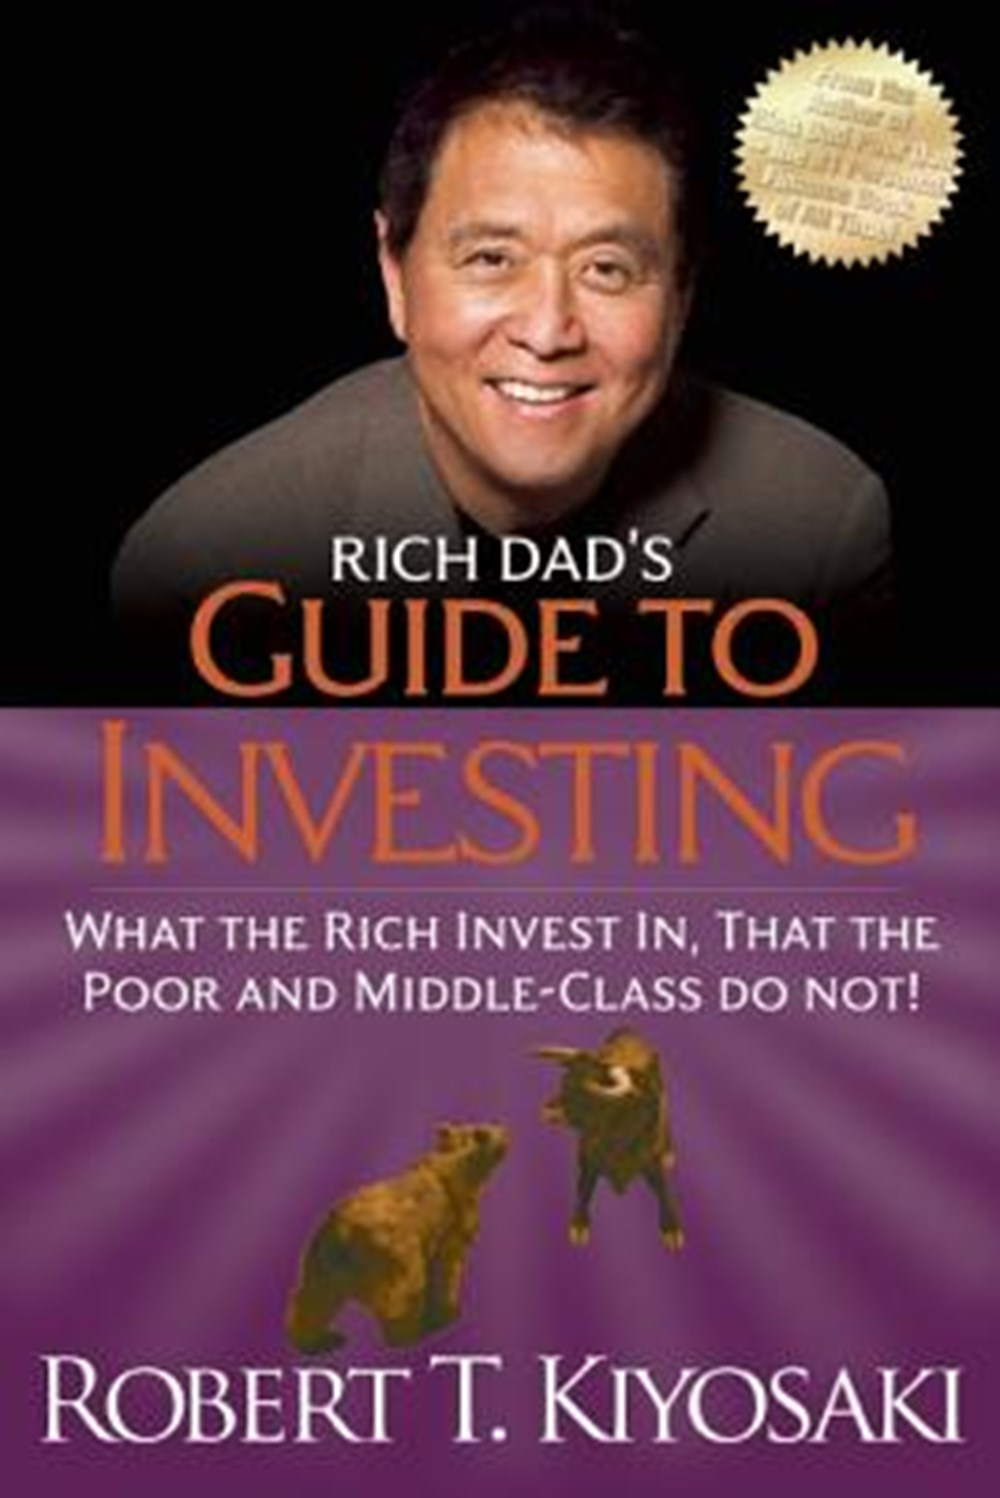 Rich Dad's Guide to Investing What the Rich Invest In, That the Poor and the Middle Class Do Not!